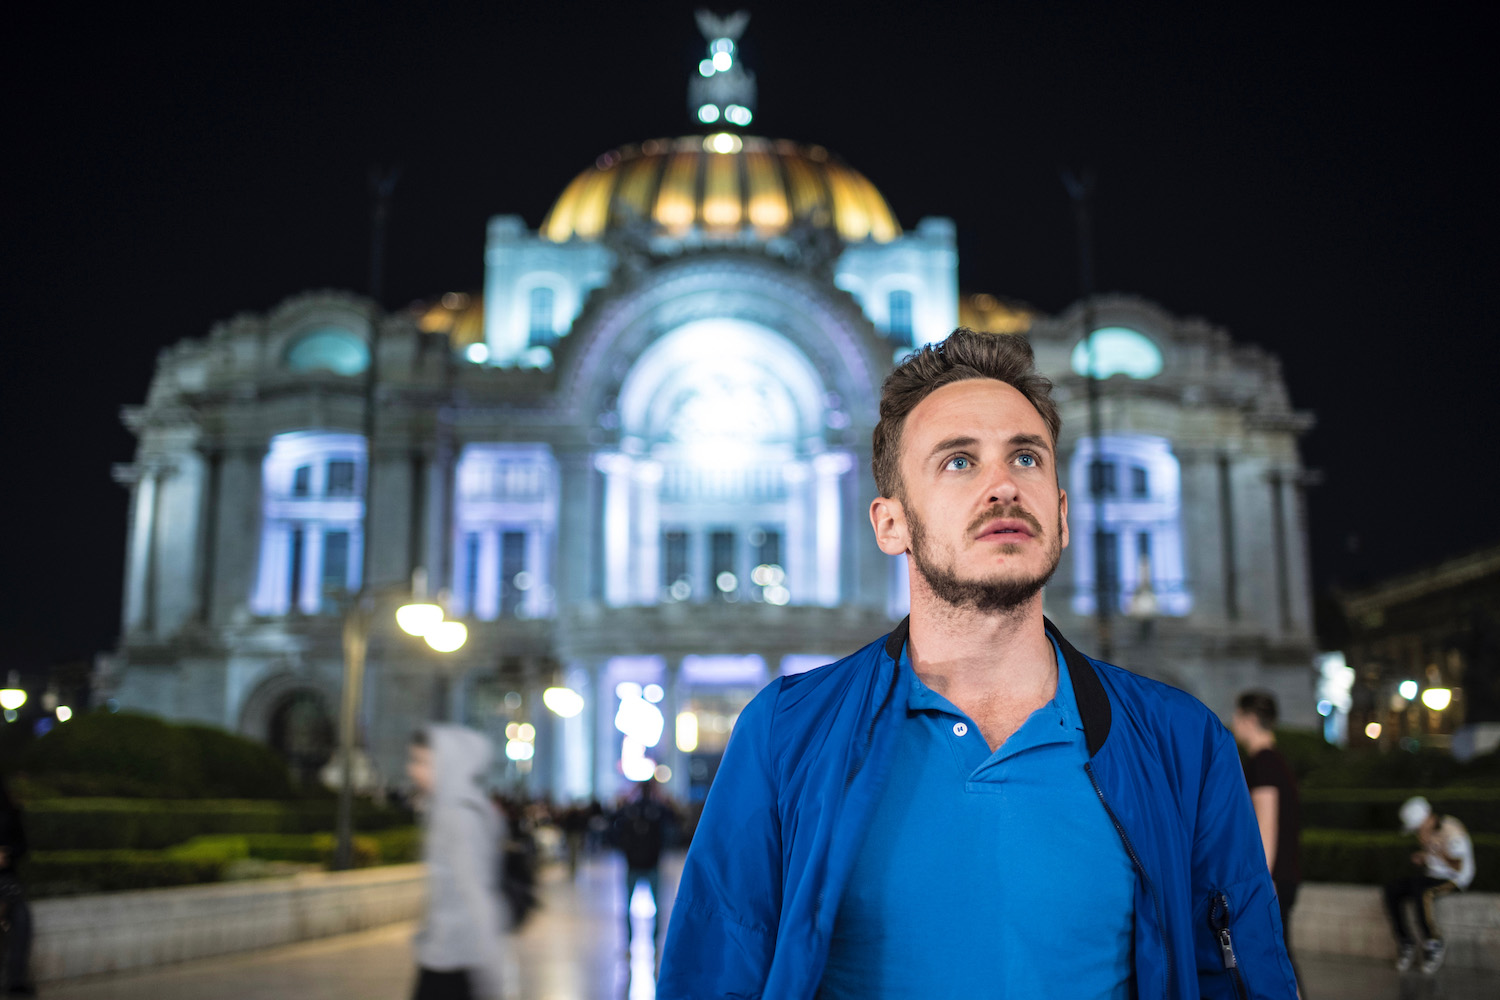 Robert Schrader in Mexico City